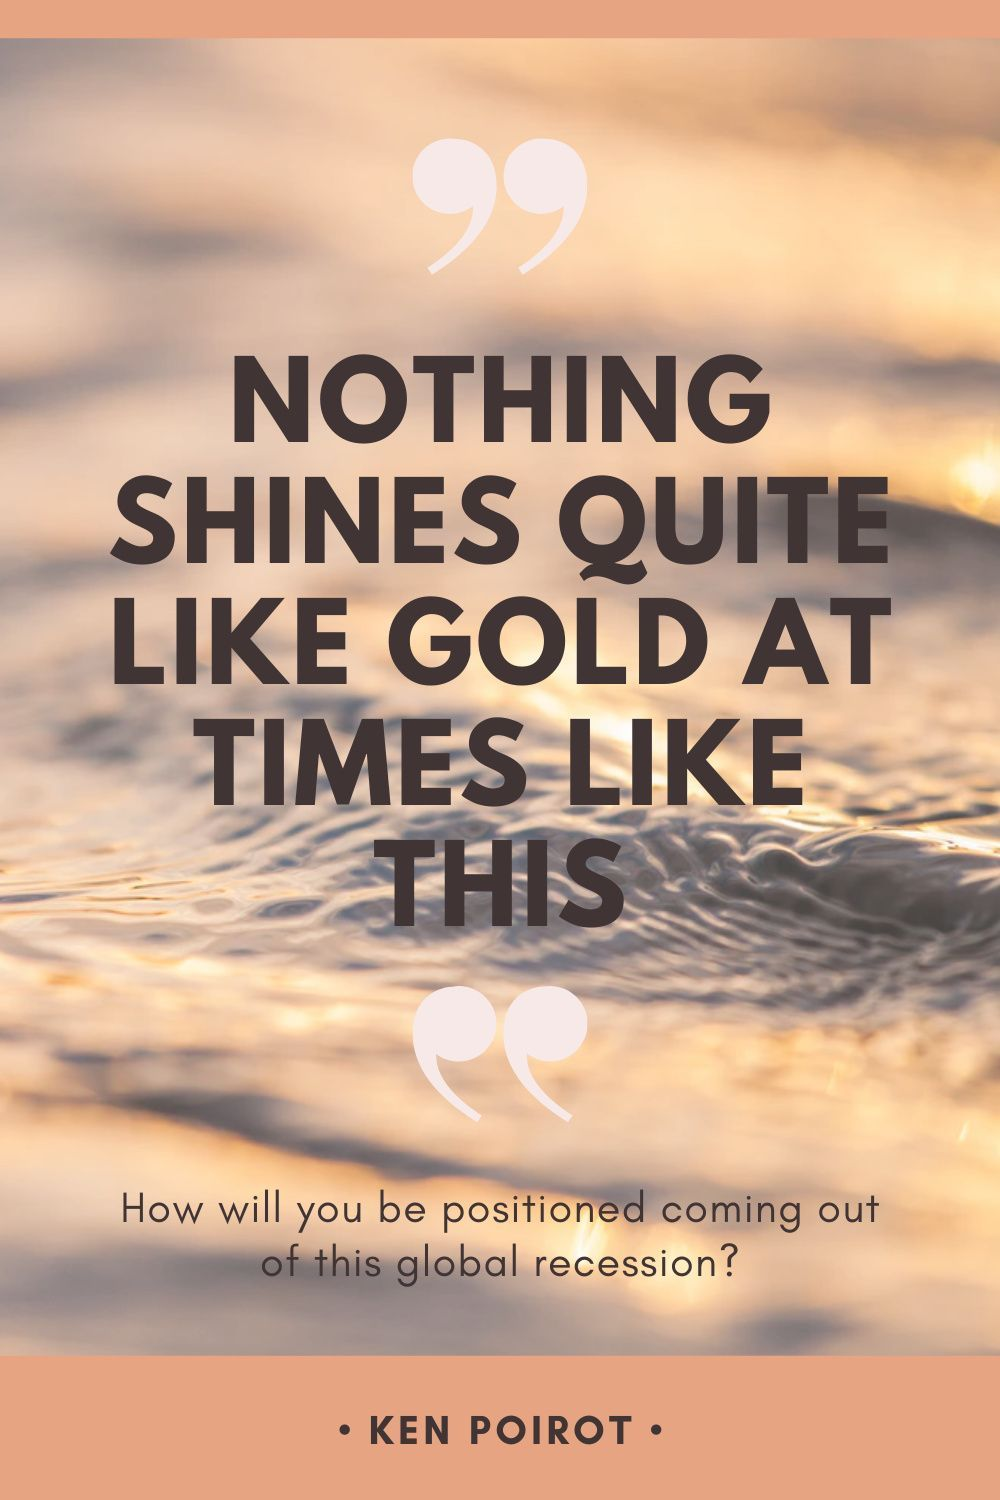 Nothing Shines Quite Like Gold At Times Like This Financial Quotes Investing Investment Tips